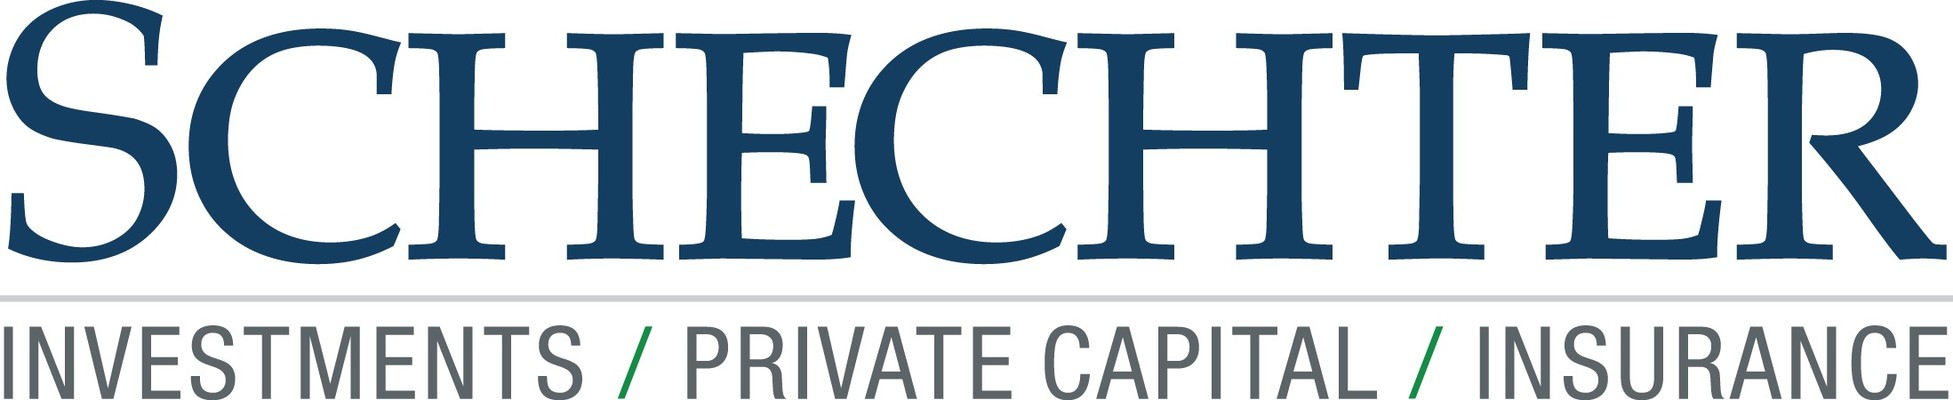 Schechter Investment Advisors Adds Chicago Presence, Reaches $2 Billion AUM in Asset Acquisition of Coe Capital Management